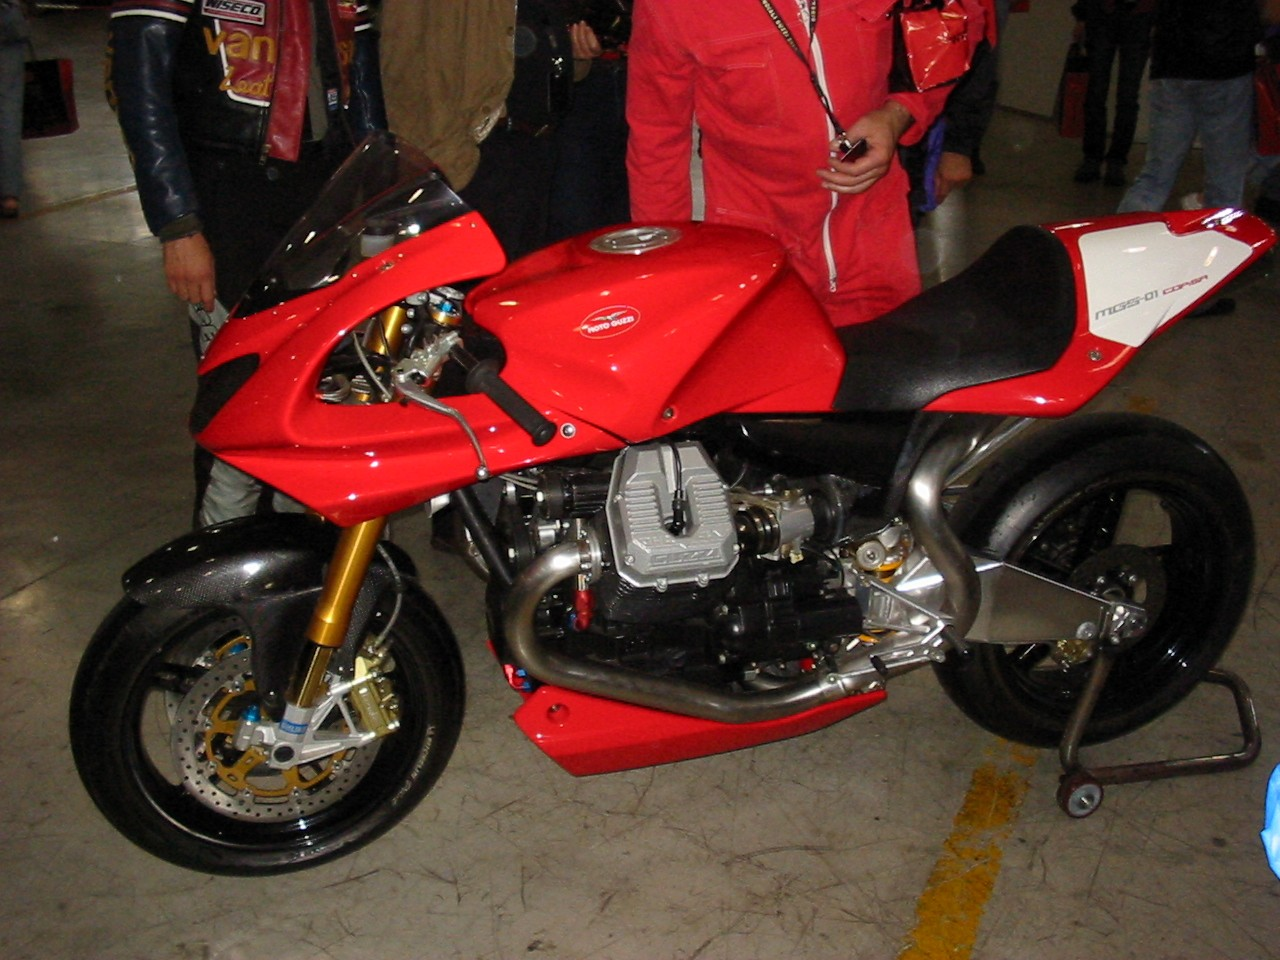 Moto Guzzi 1000 Daytona Injection images #108550